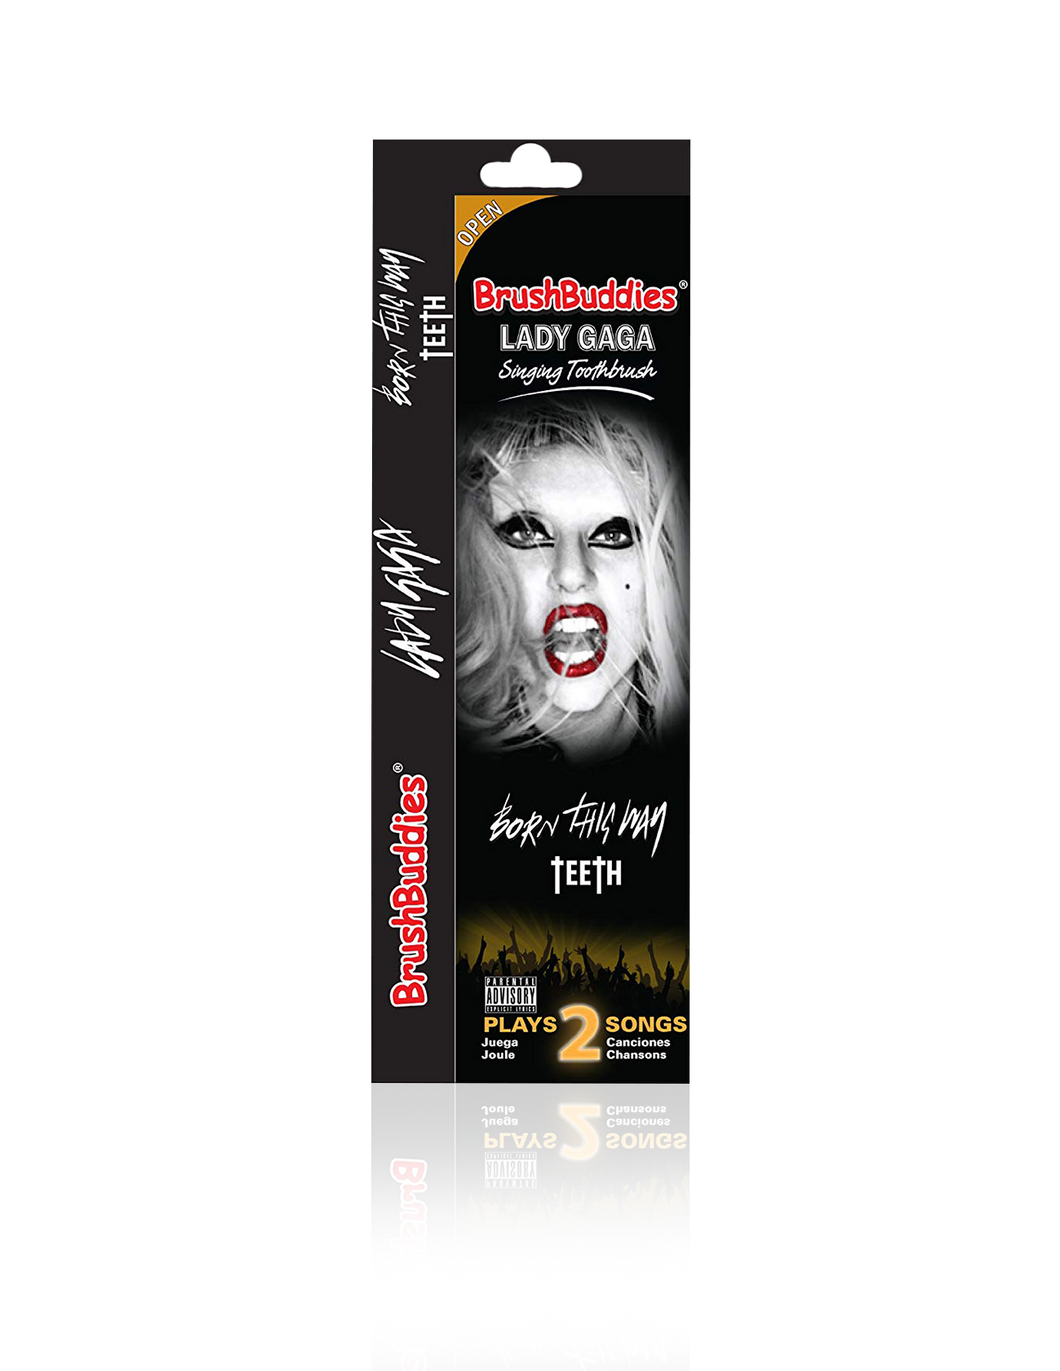 Lady Gaga singing toothbrush Featuring (Born This Way & Teeth)